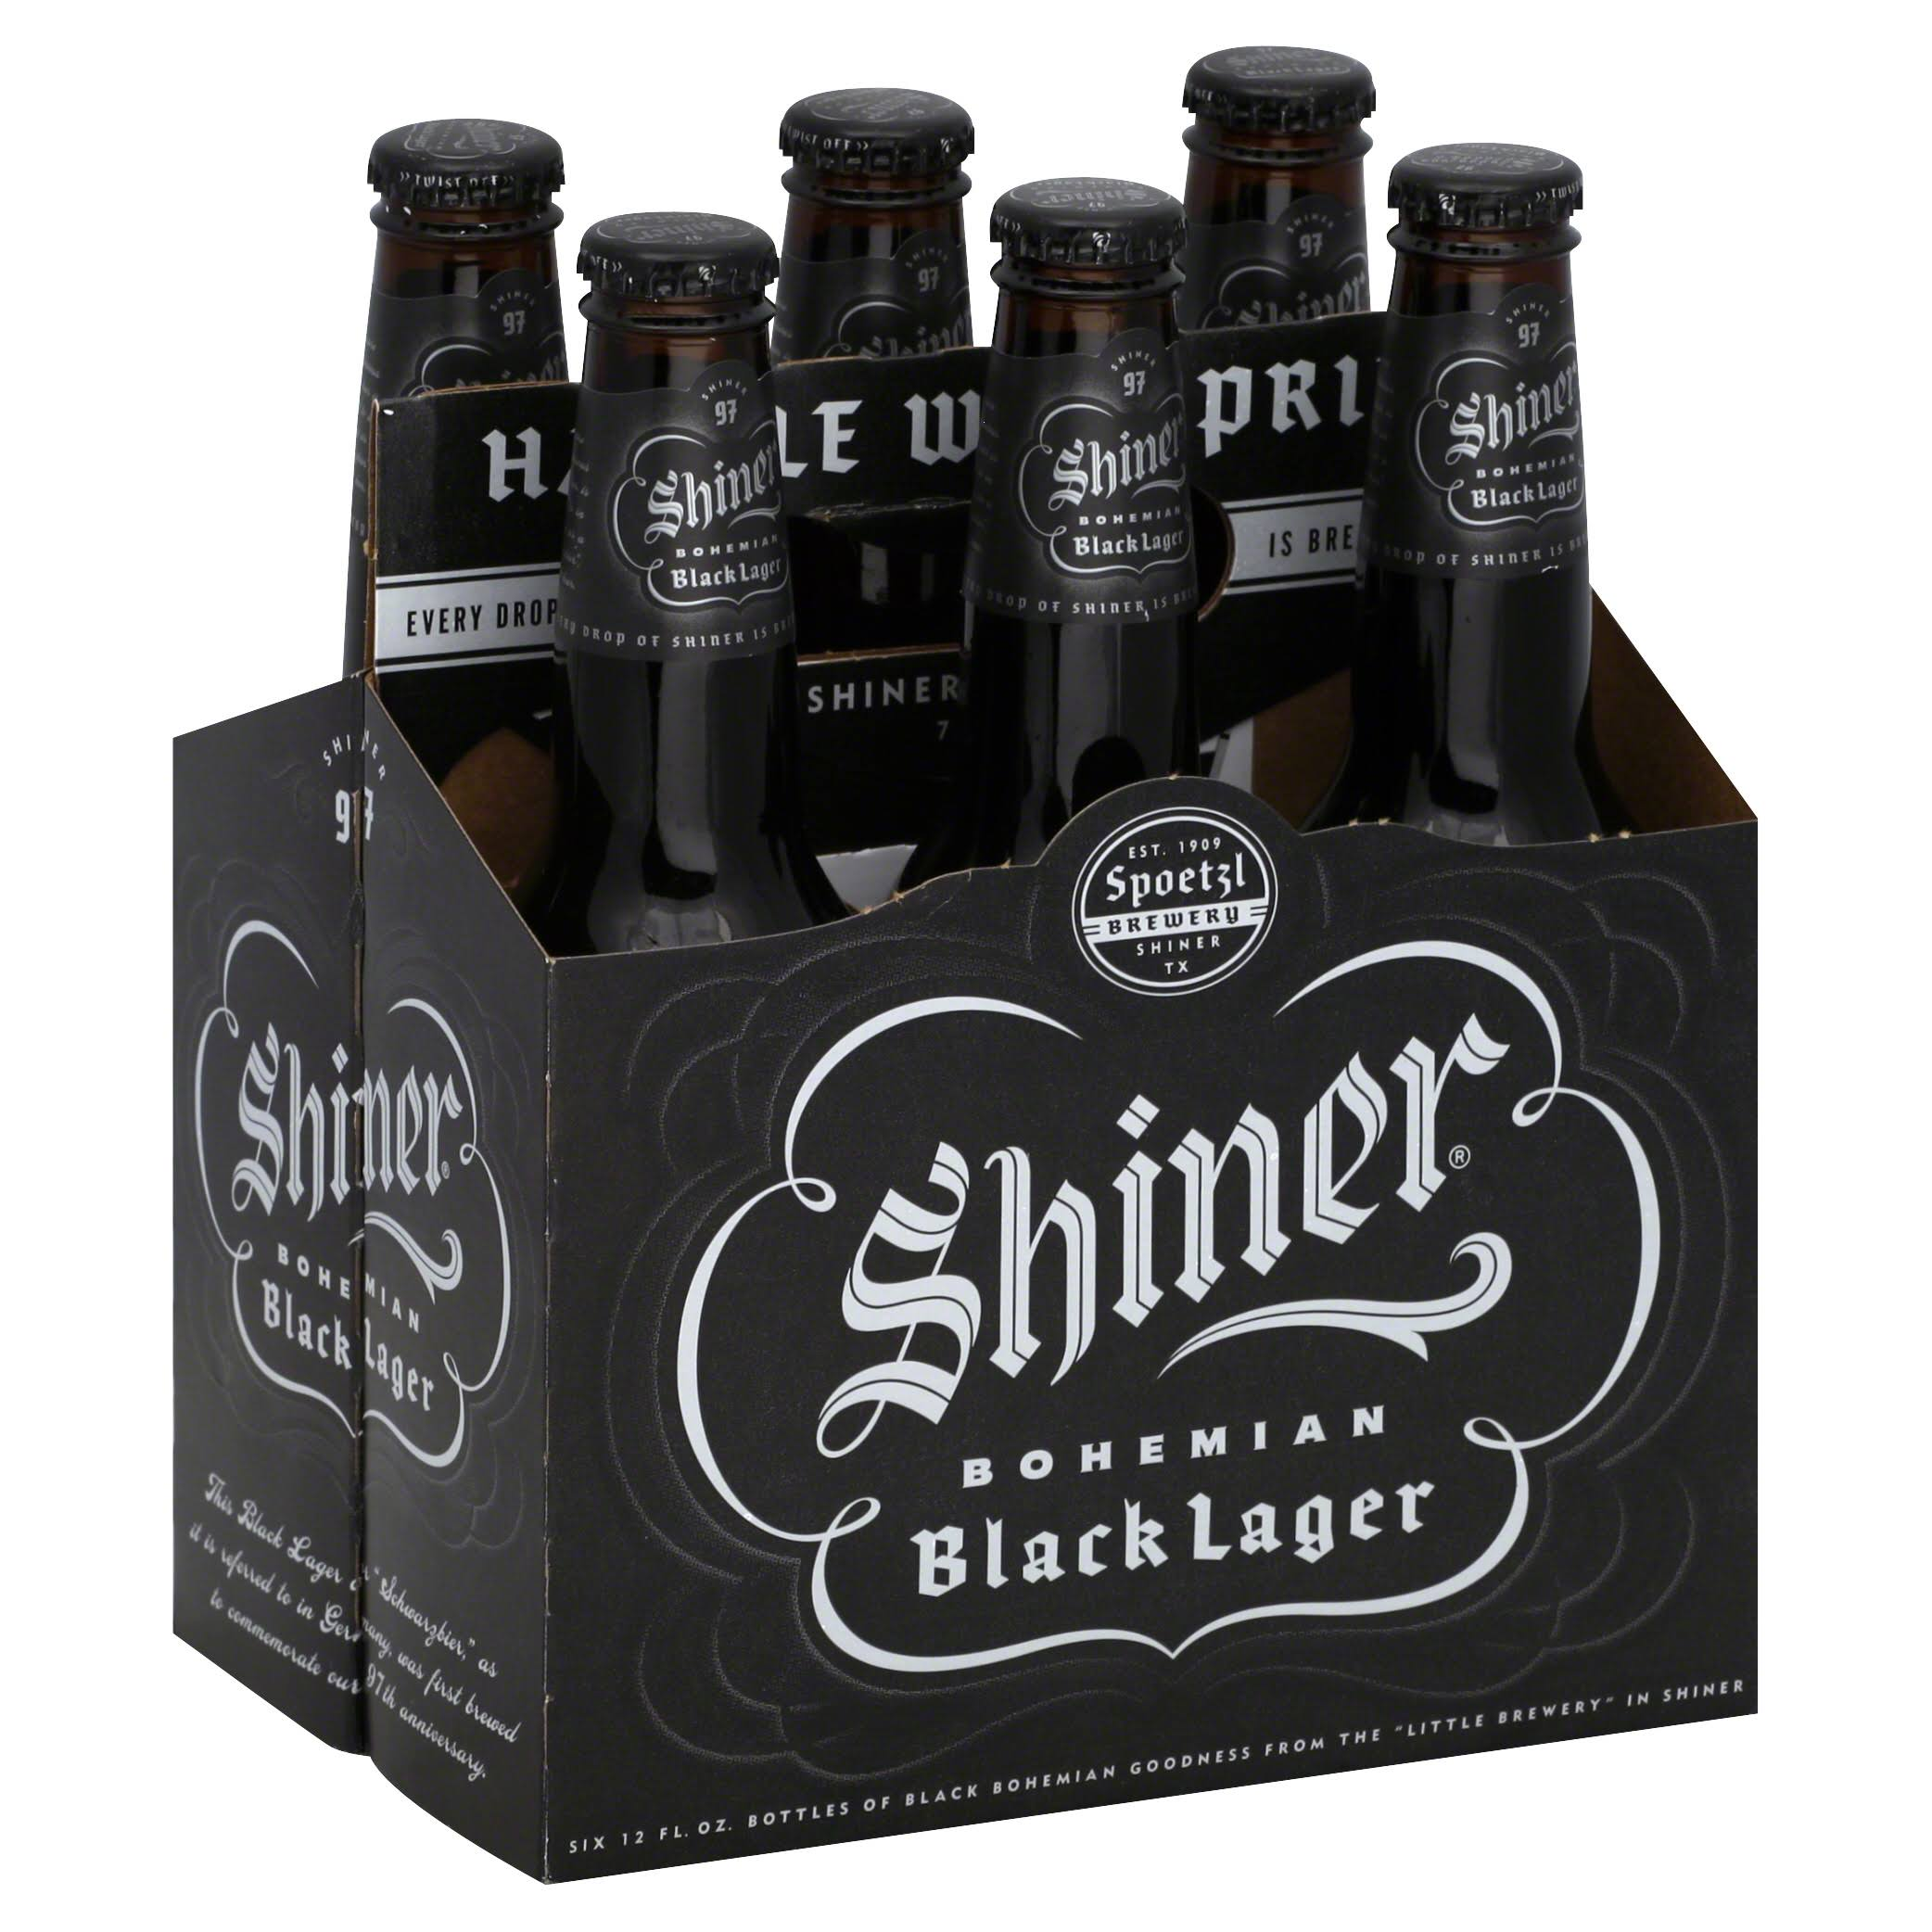 Shiner Bohemian Beer - Black Lager, 6 pack, 12 floz